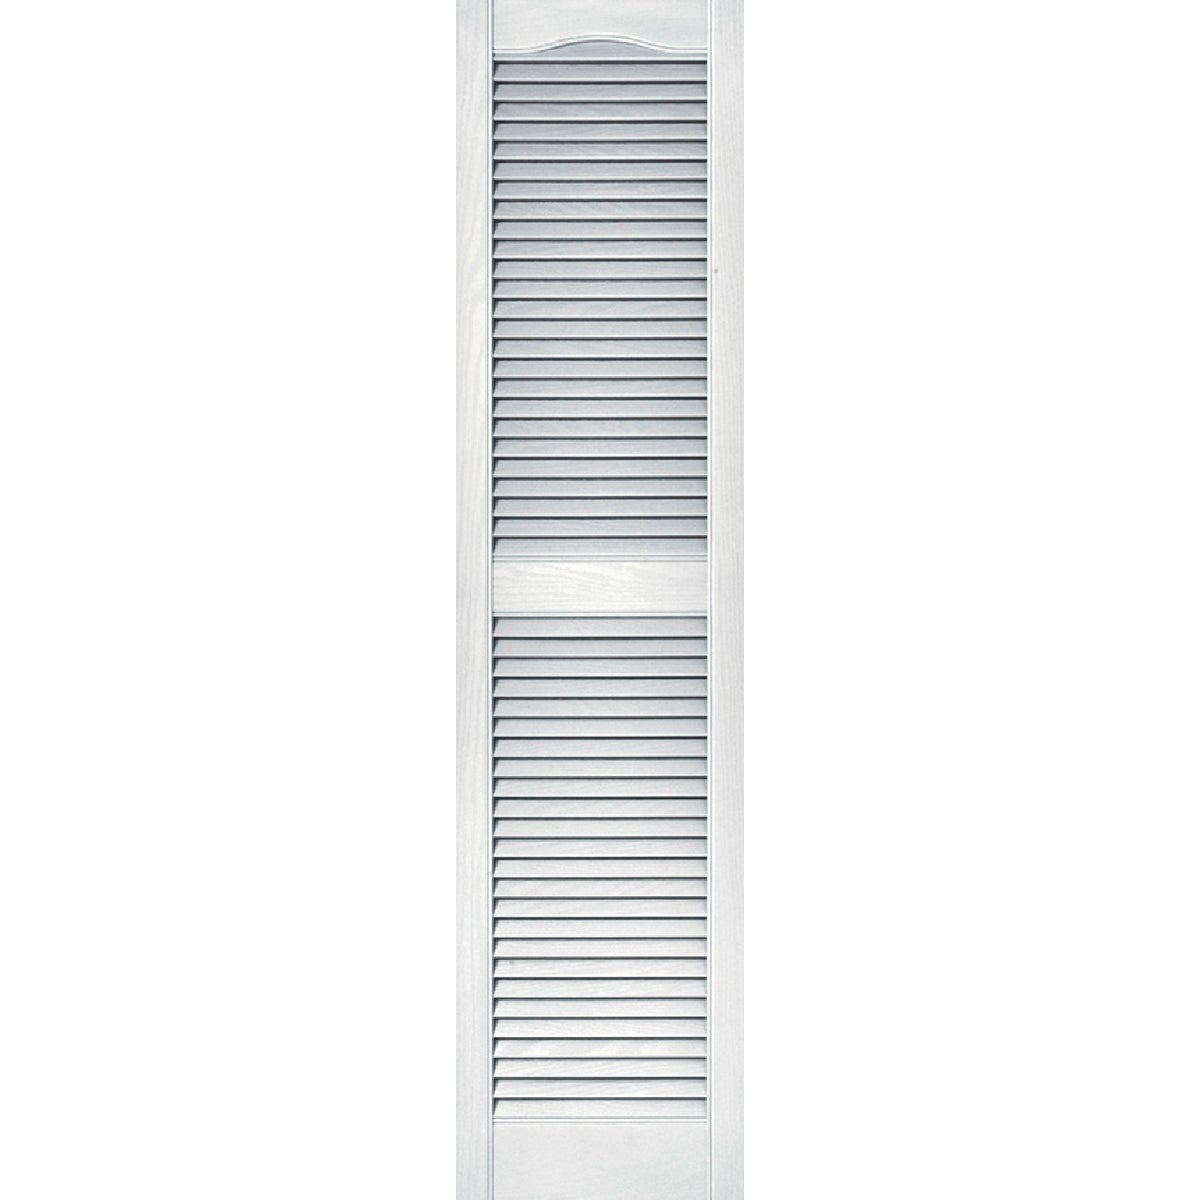 15X60 WHT LOUVER SHUTTER - 020140060001 by The Tapco Group